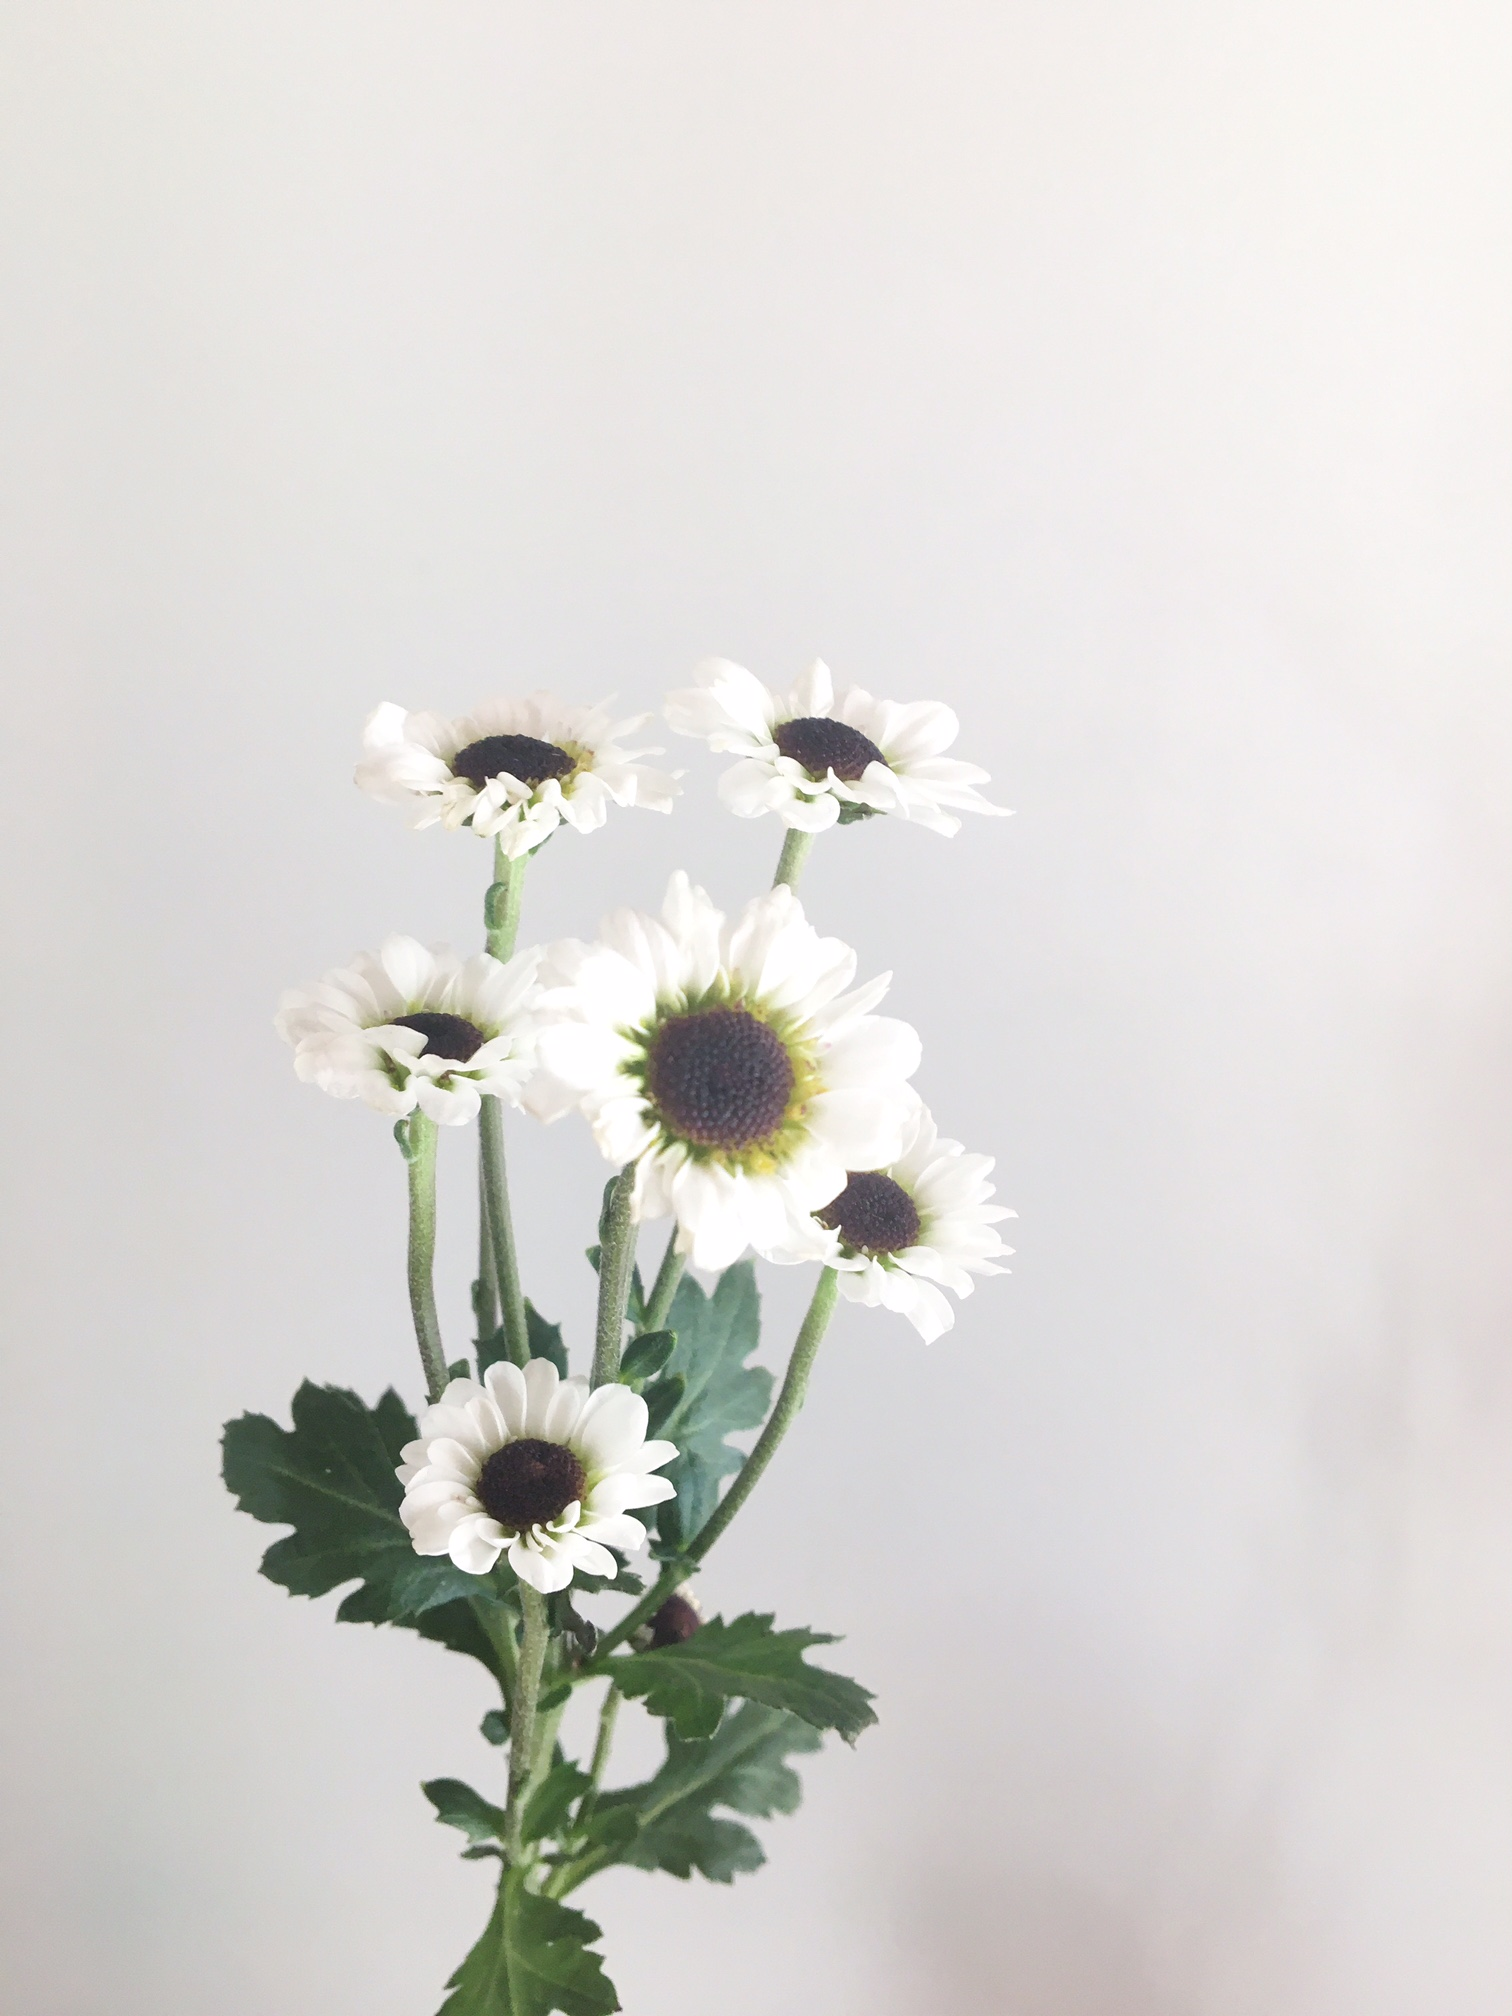 WHITE DAISY WITH BLACK CENTER